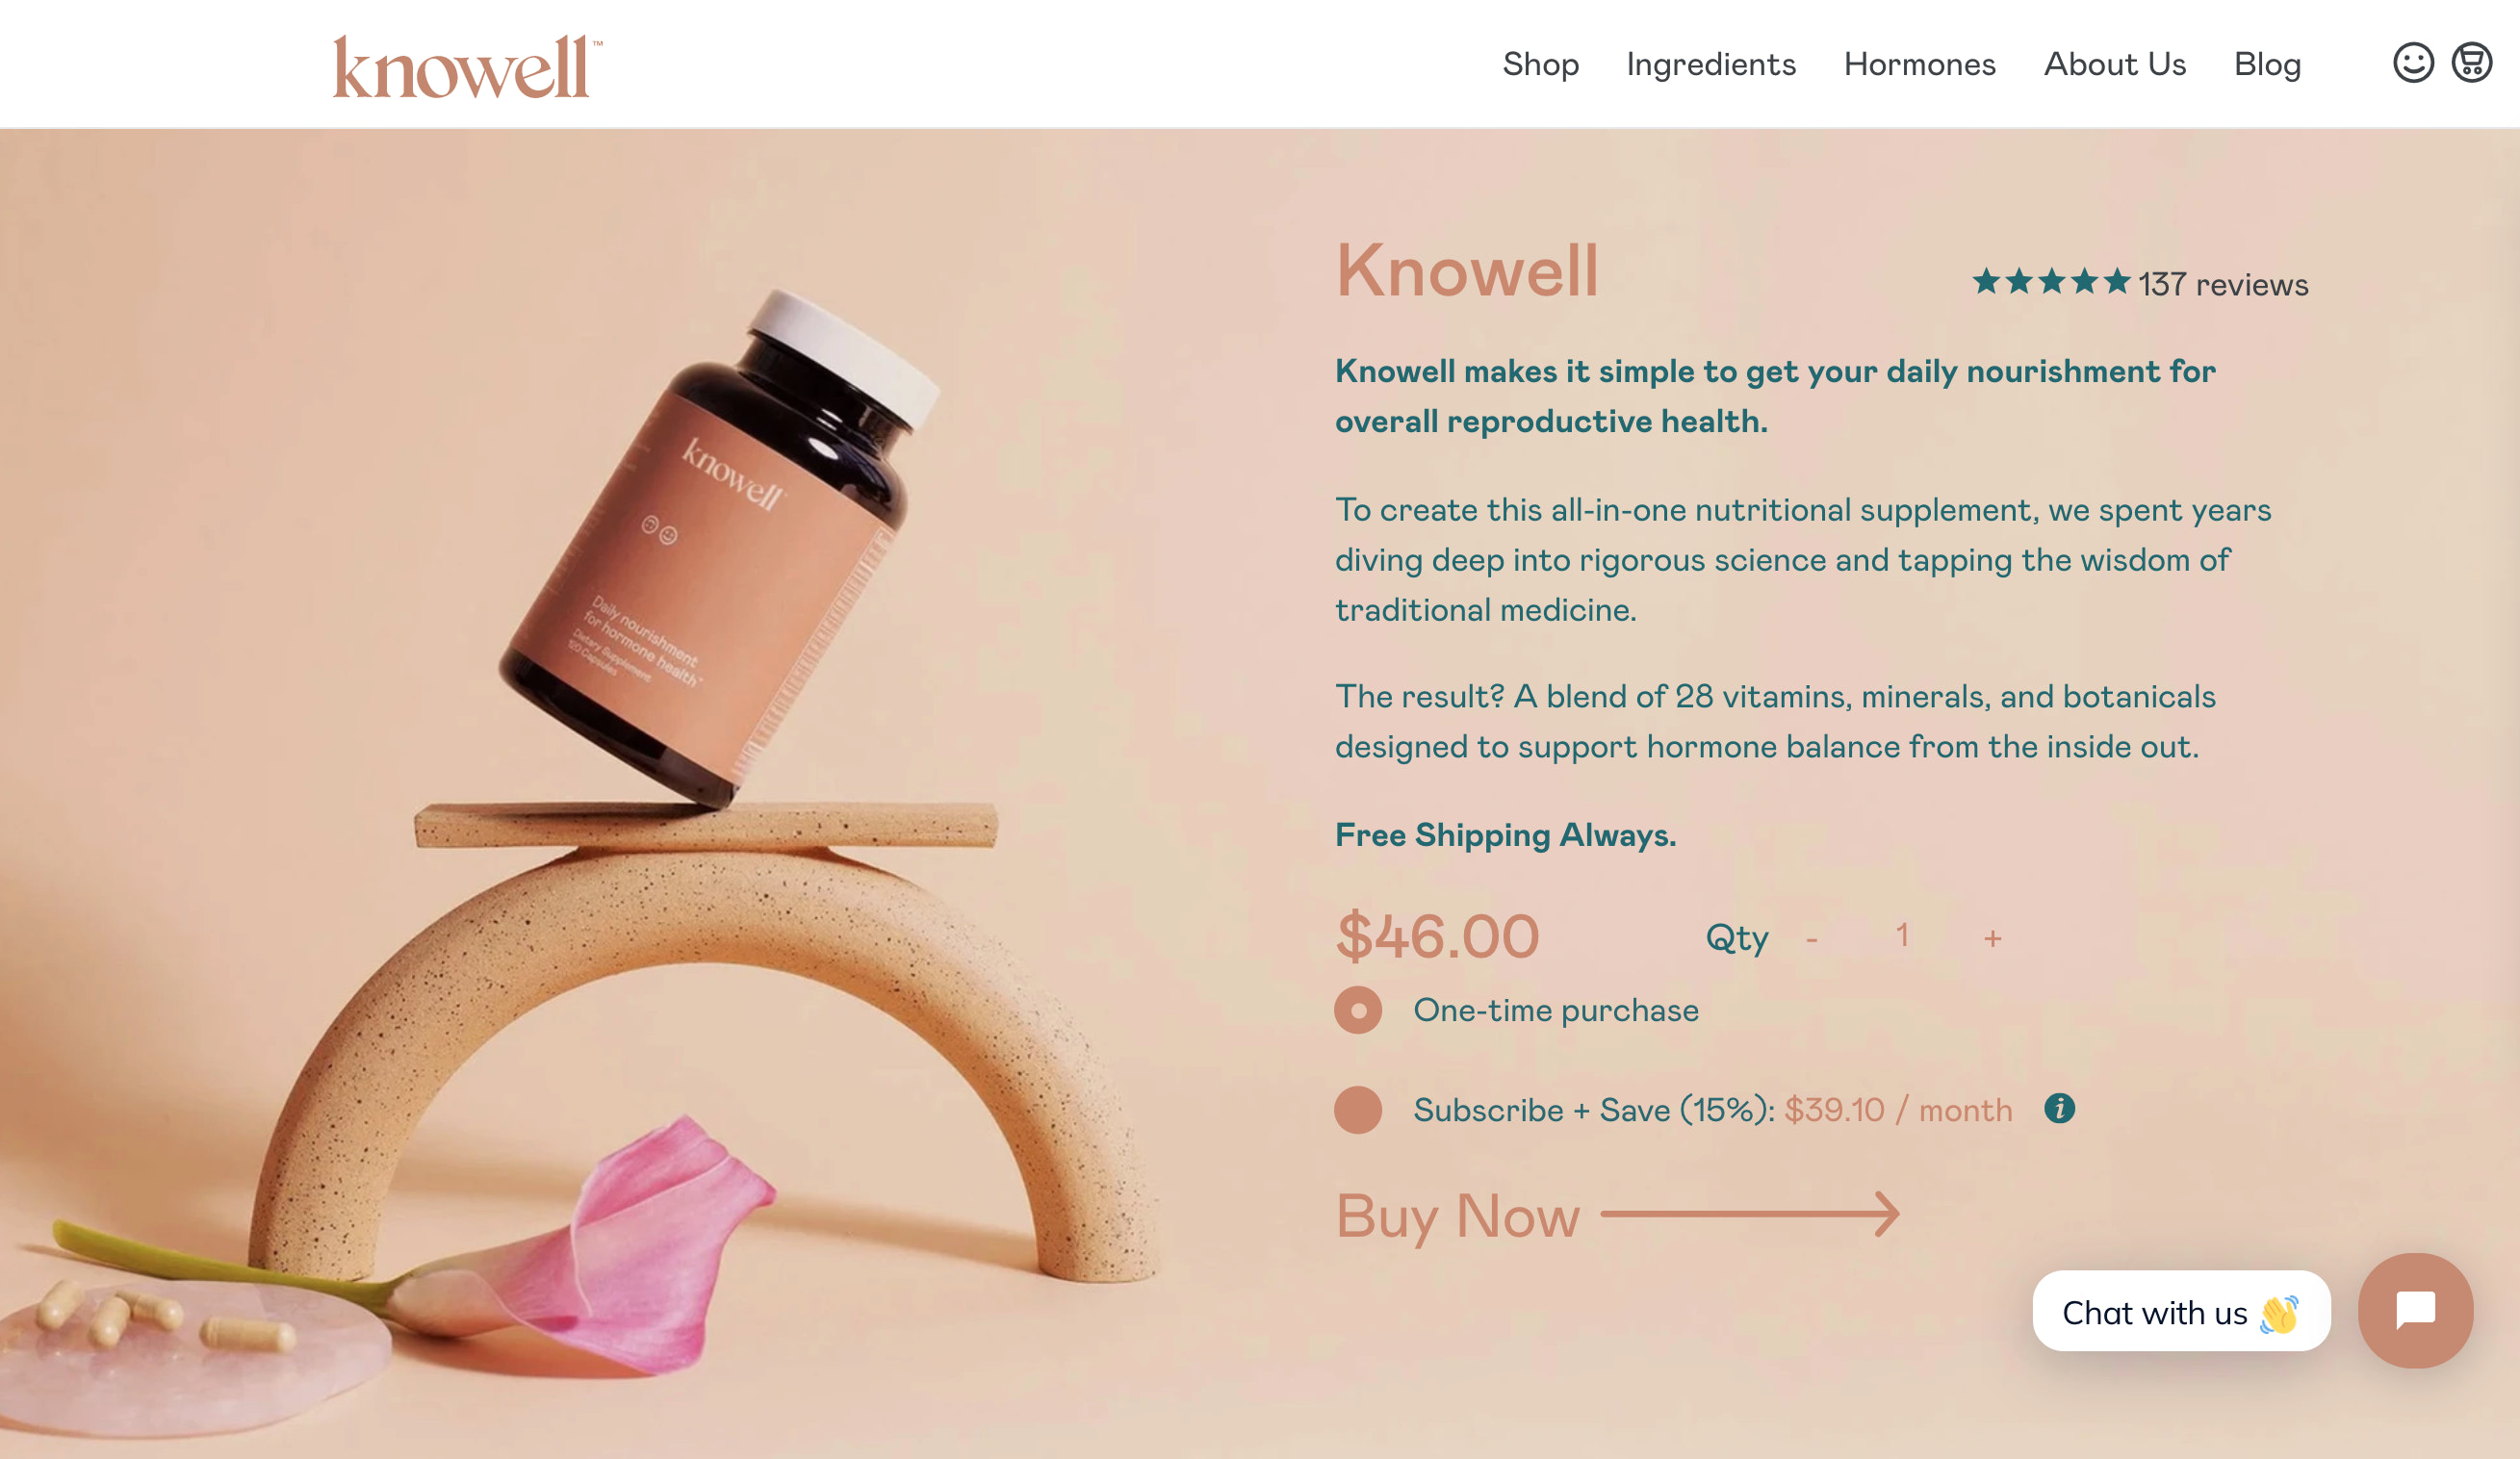 Example of a product page on Knowell's website.